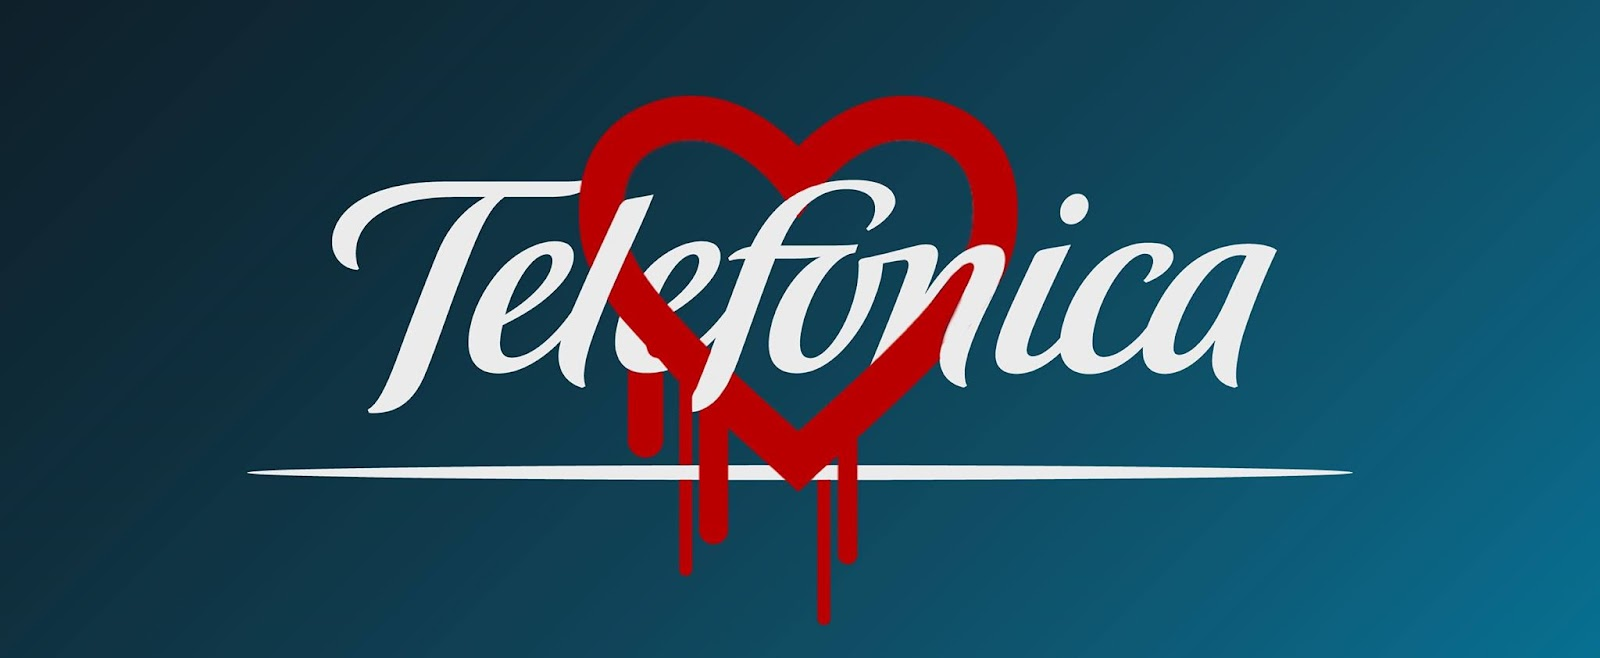 HeartBleed_Telefonica.jpg